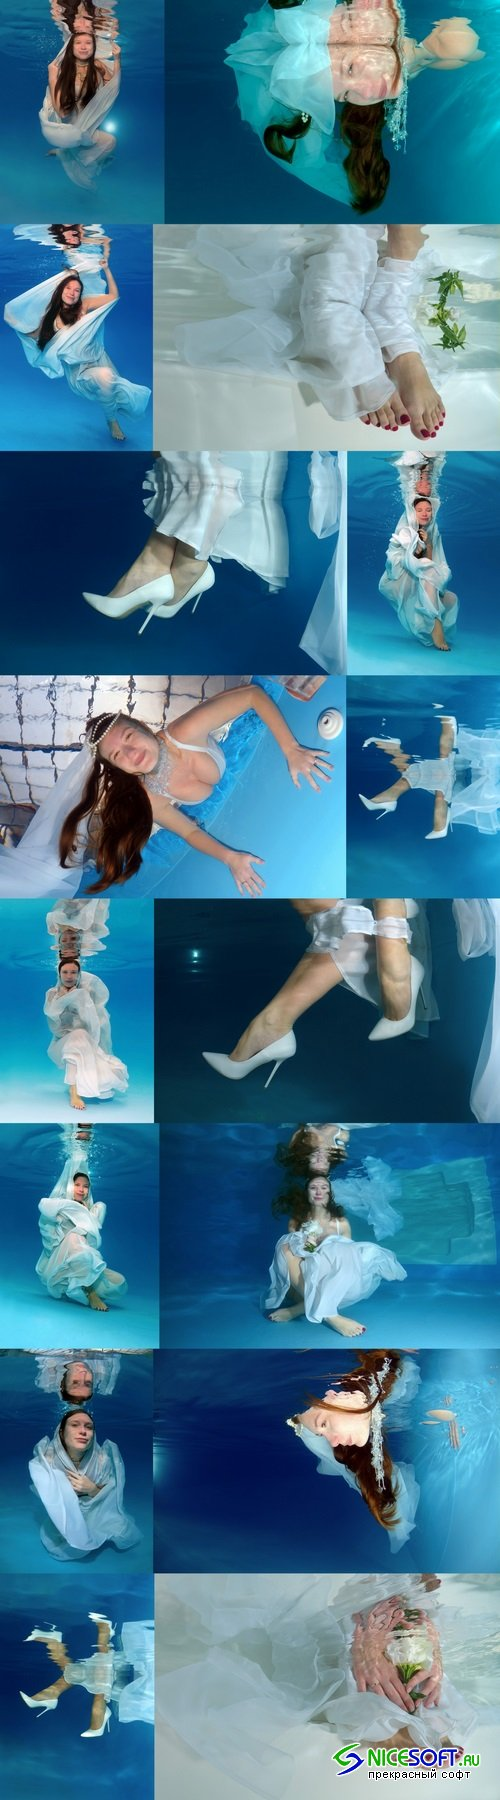 Bride's hands and feet, flowers, underwater wedding in pool